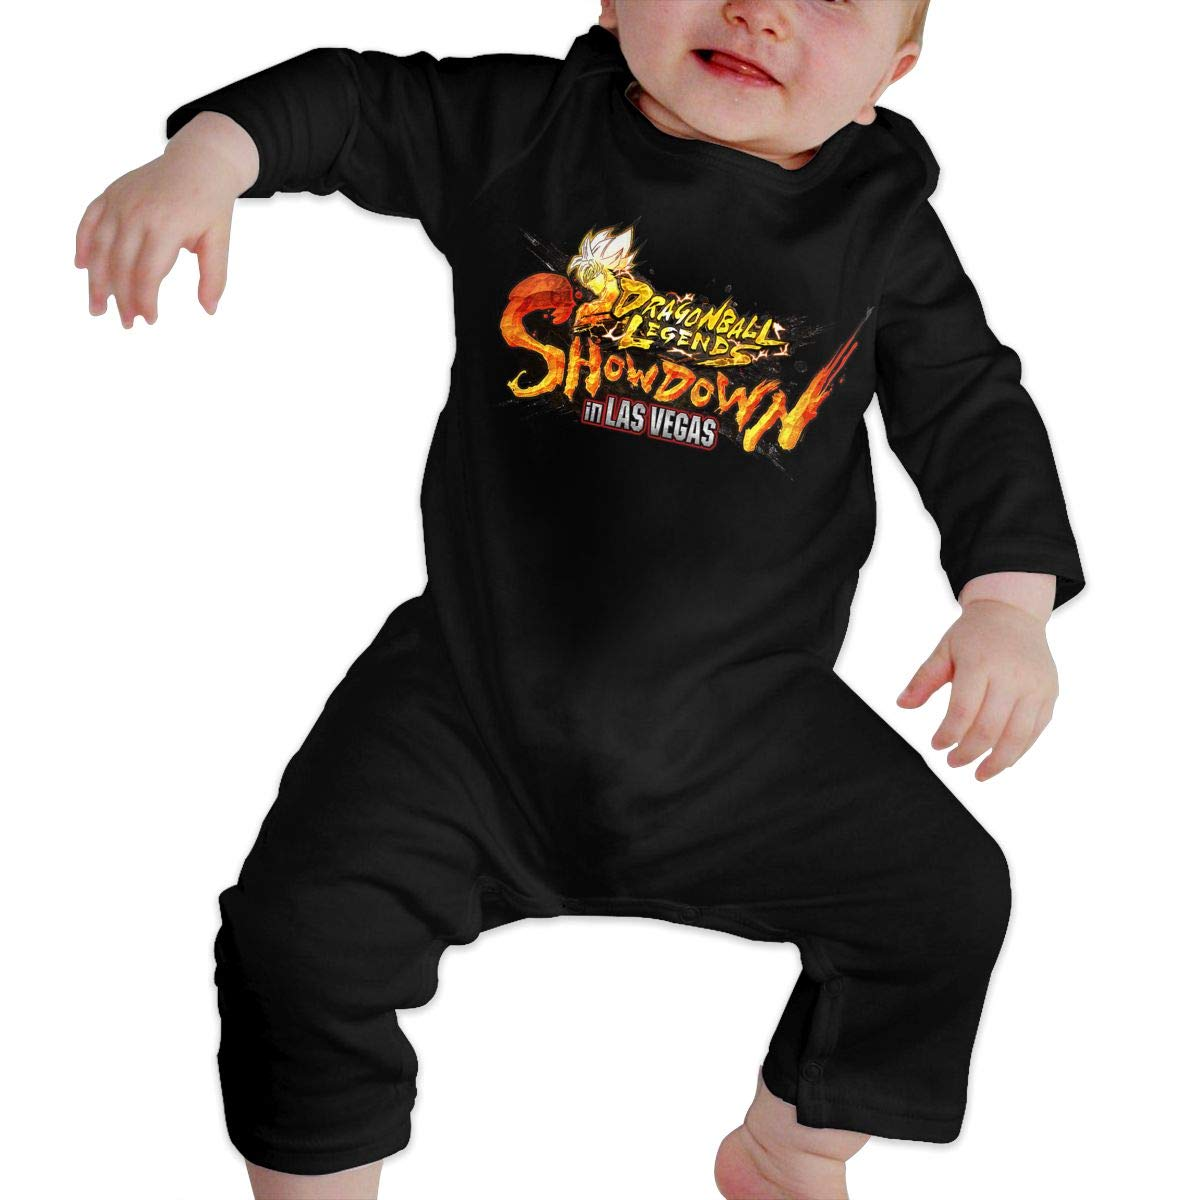 Baby O-Neck Long-Sleeve Pure Color Romper DRA/_GON Ball Legends Showdown in LAS Vegas Crawling Suit